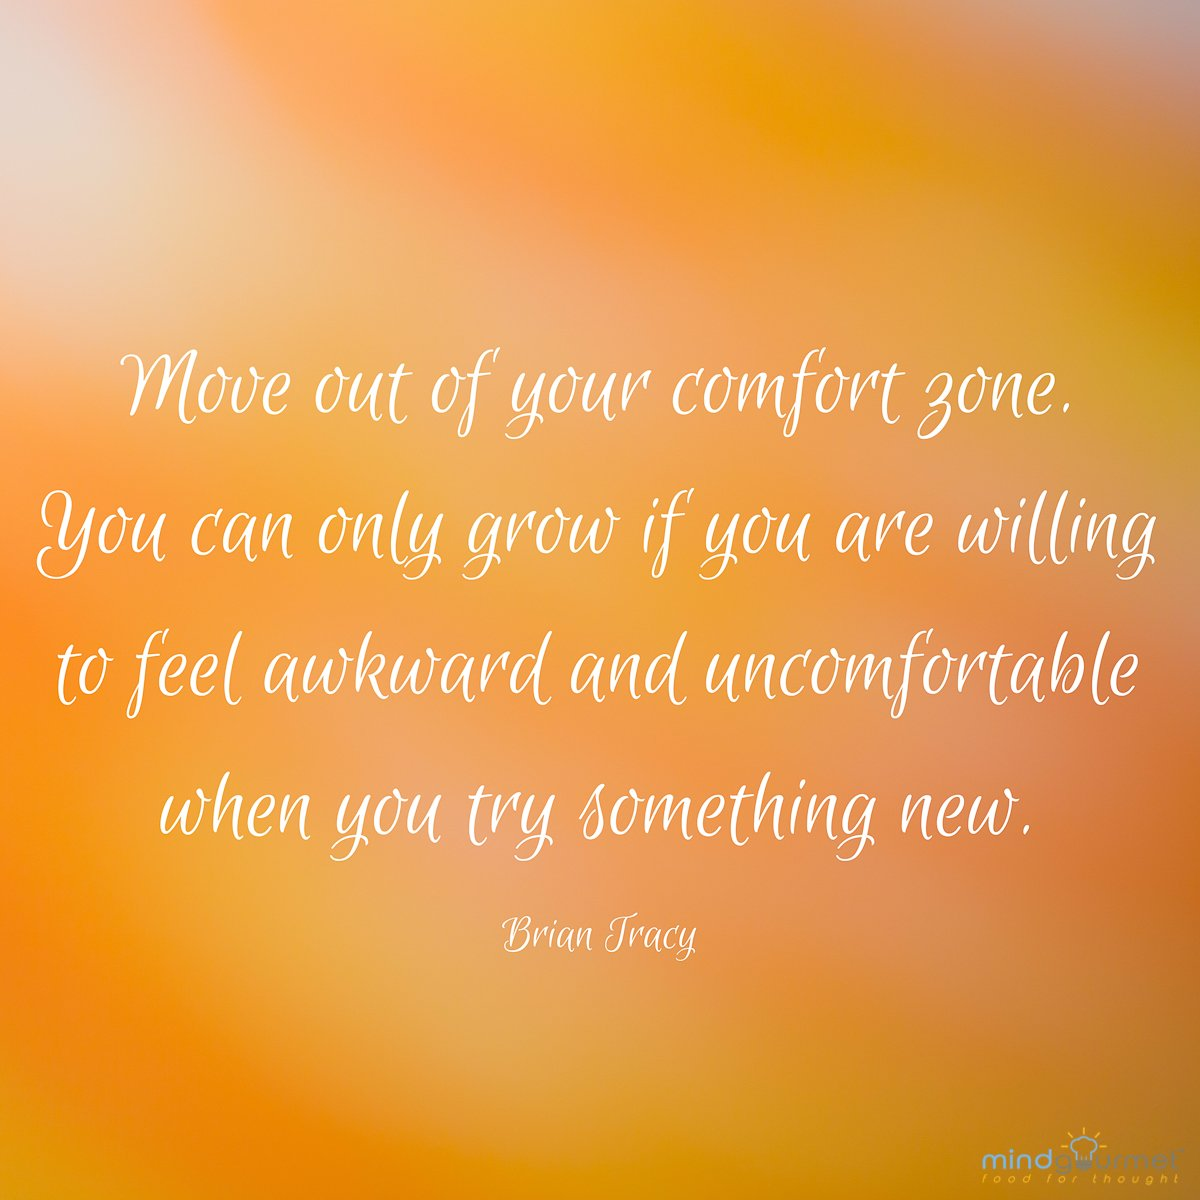 No one likes feeling unsteady but remember every time you finally got it... it&#39;s worth it. Find support to steady you and push on. #BrianTracy  @brian_tracey #comfortzone #comfortzoneweek #catchoftheday  https:// mindgourmet.com/catch-of-the-d ay/comfort-zone-2/ &nbsp; … <br>http://pic.twitter.com/AHJCmWHfWe